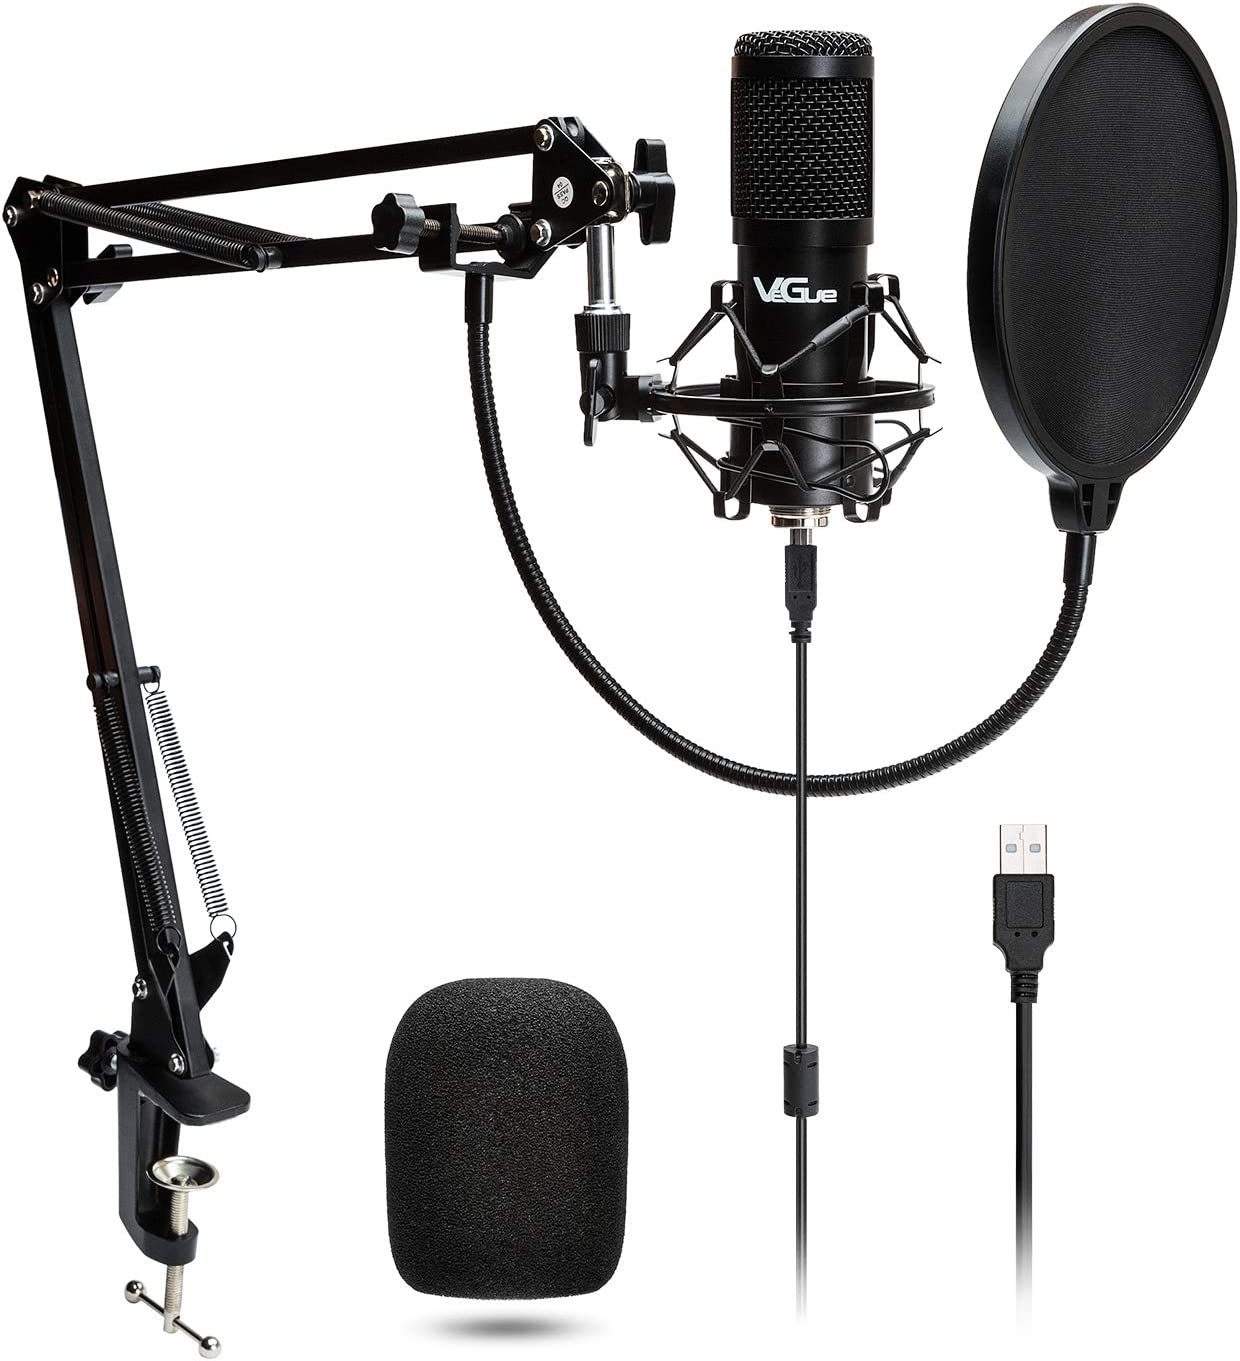 VeGue USB Microphone Kit Condenser Computer PC Recording Mic Kit VG016 for Game, Stream, Podcast, Recording Music, Voice Over 192KHz/24BIT